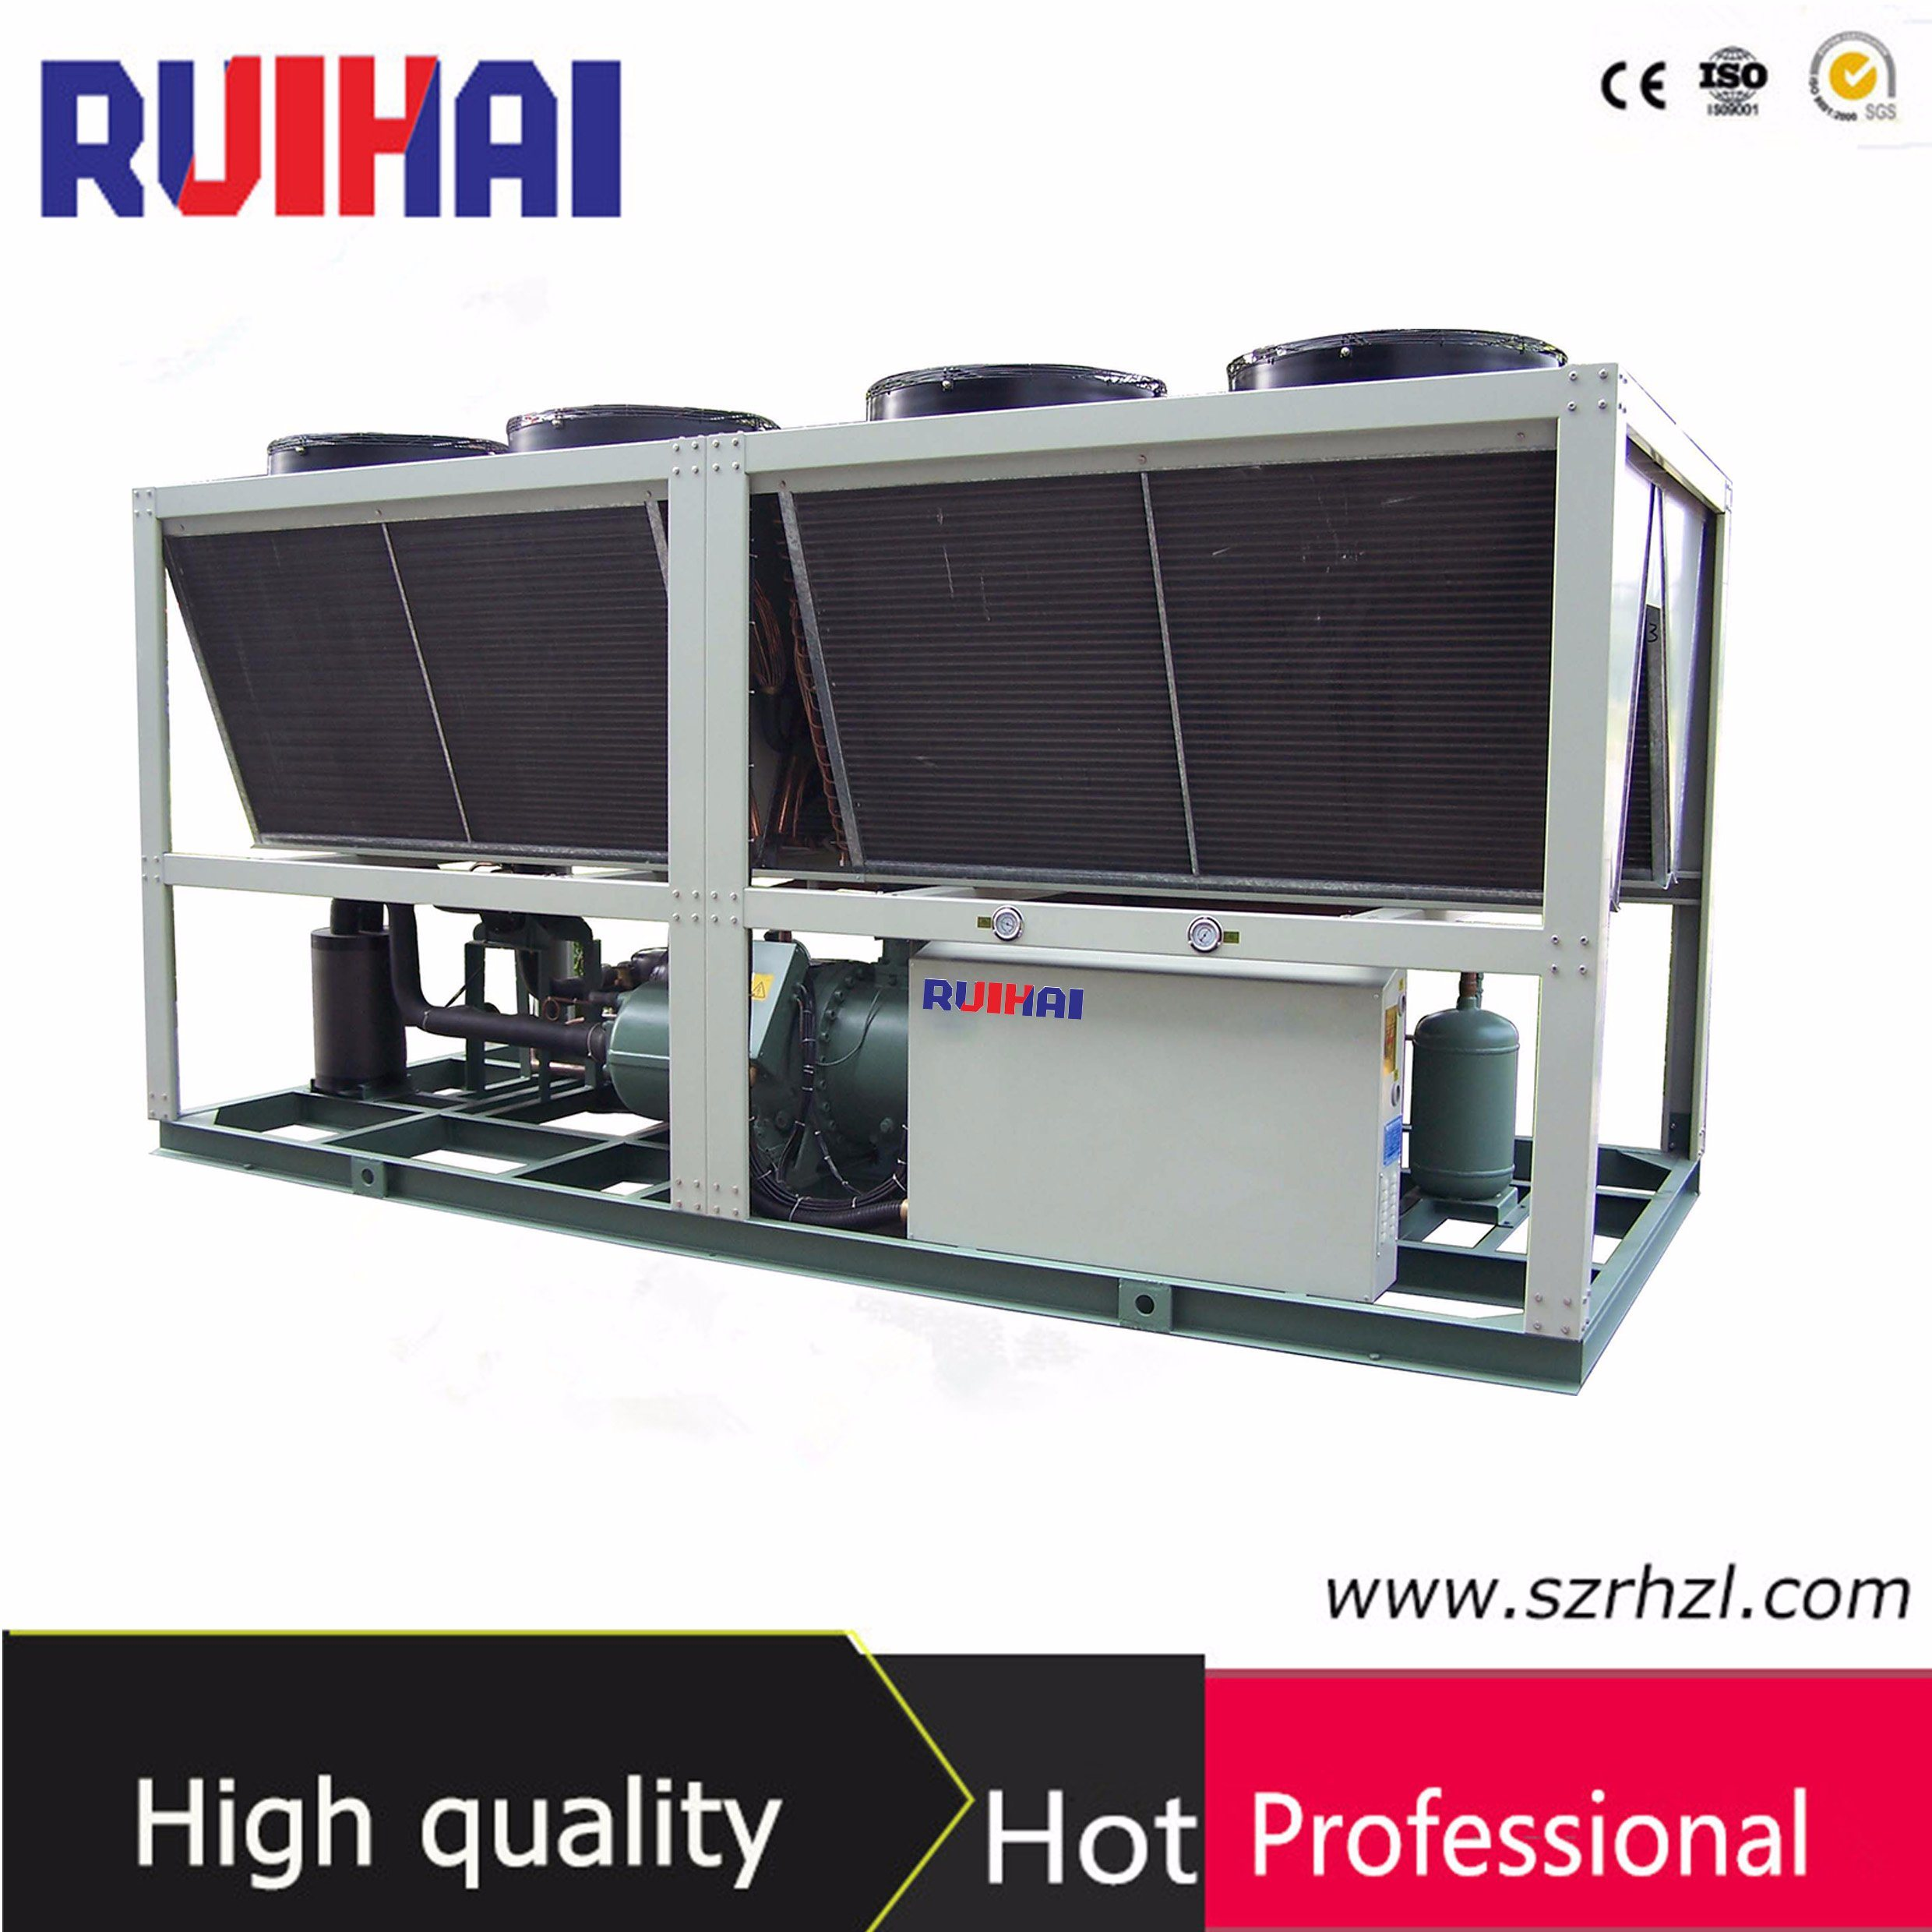 116.3kw Packaged Unit Low Noise Air Cooled Screw Type Water Chiller for Printing